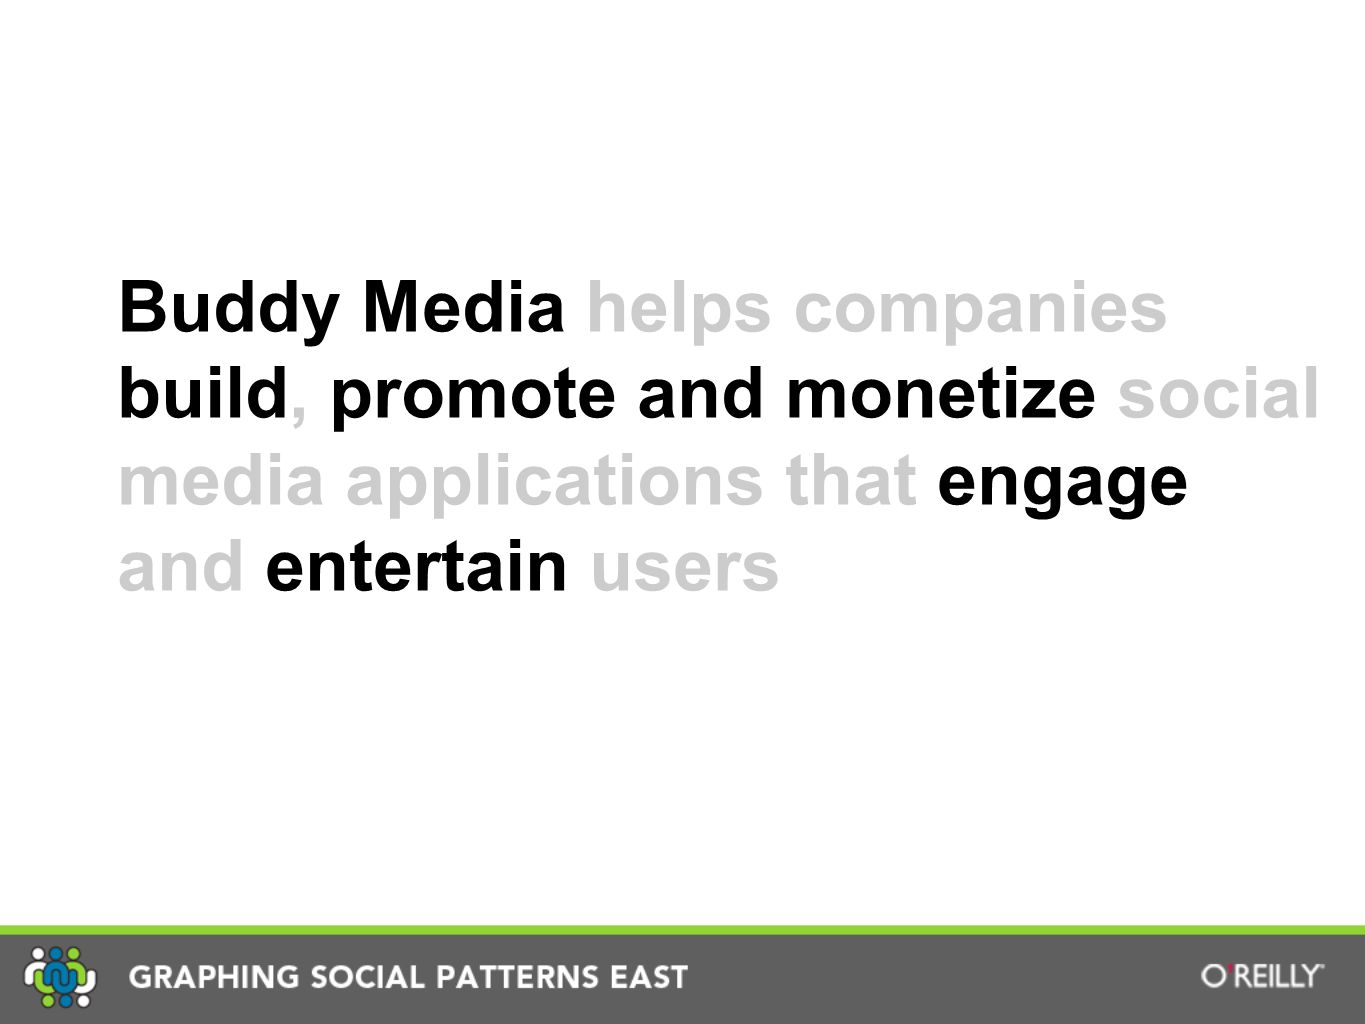 Buddy Media helps companies build, promote and monetize social media applications that engage and entertain users